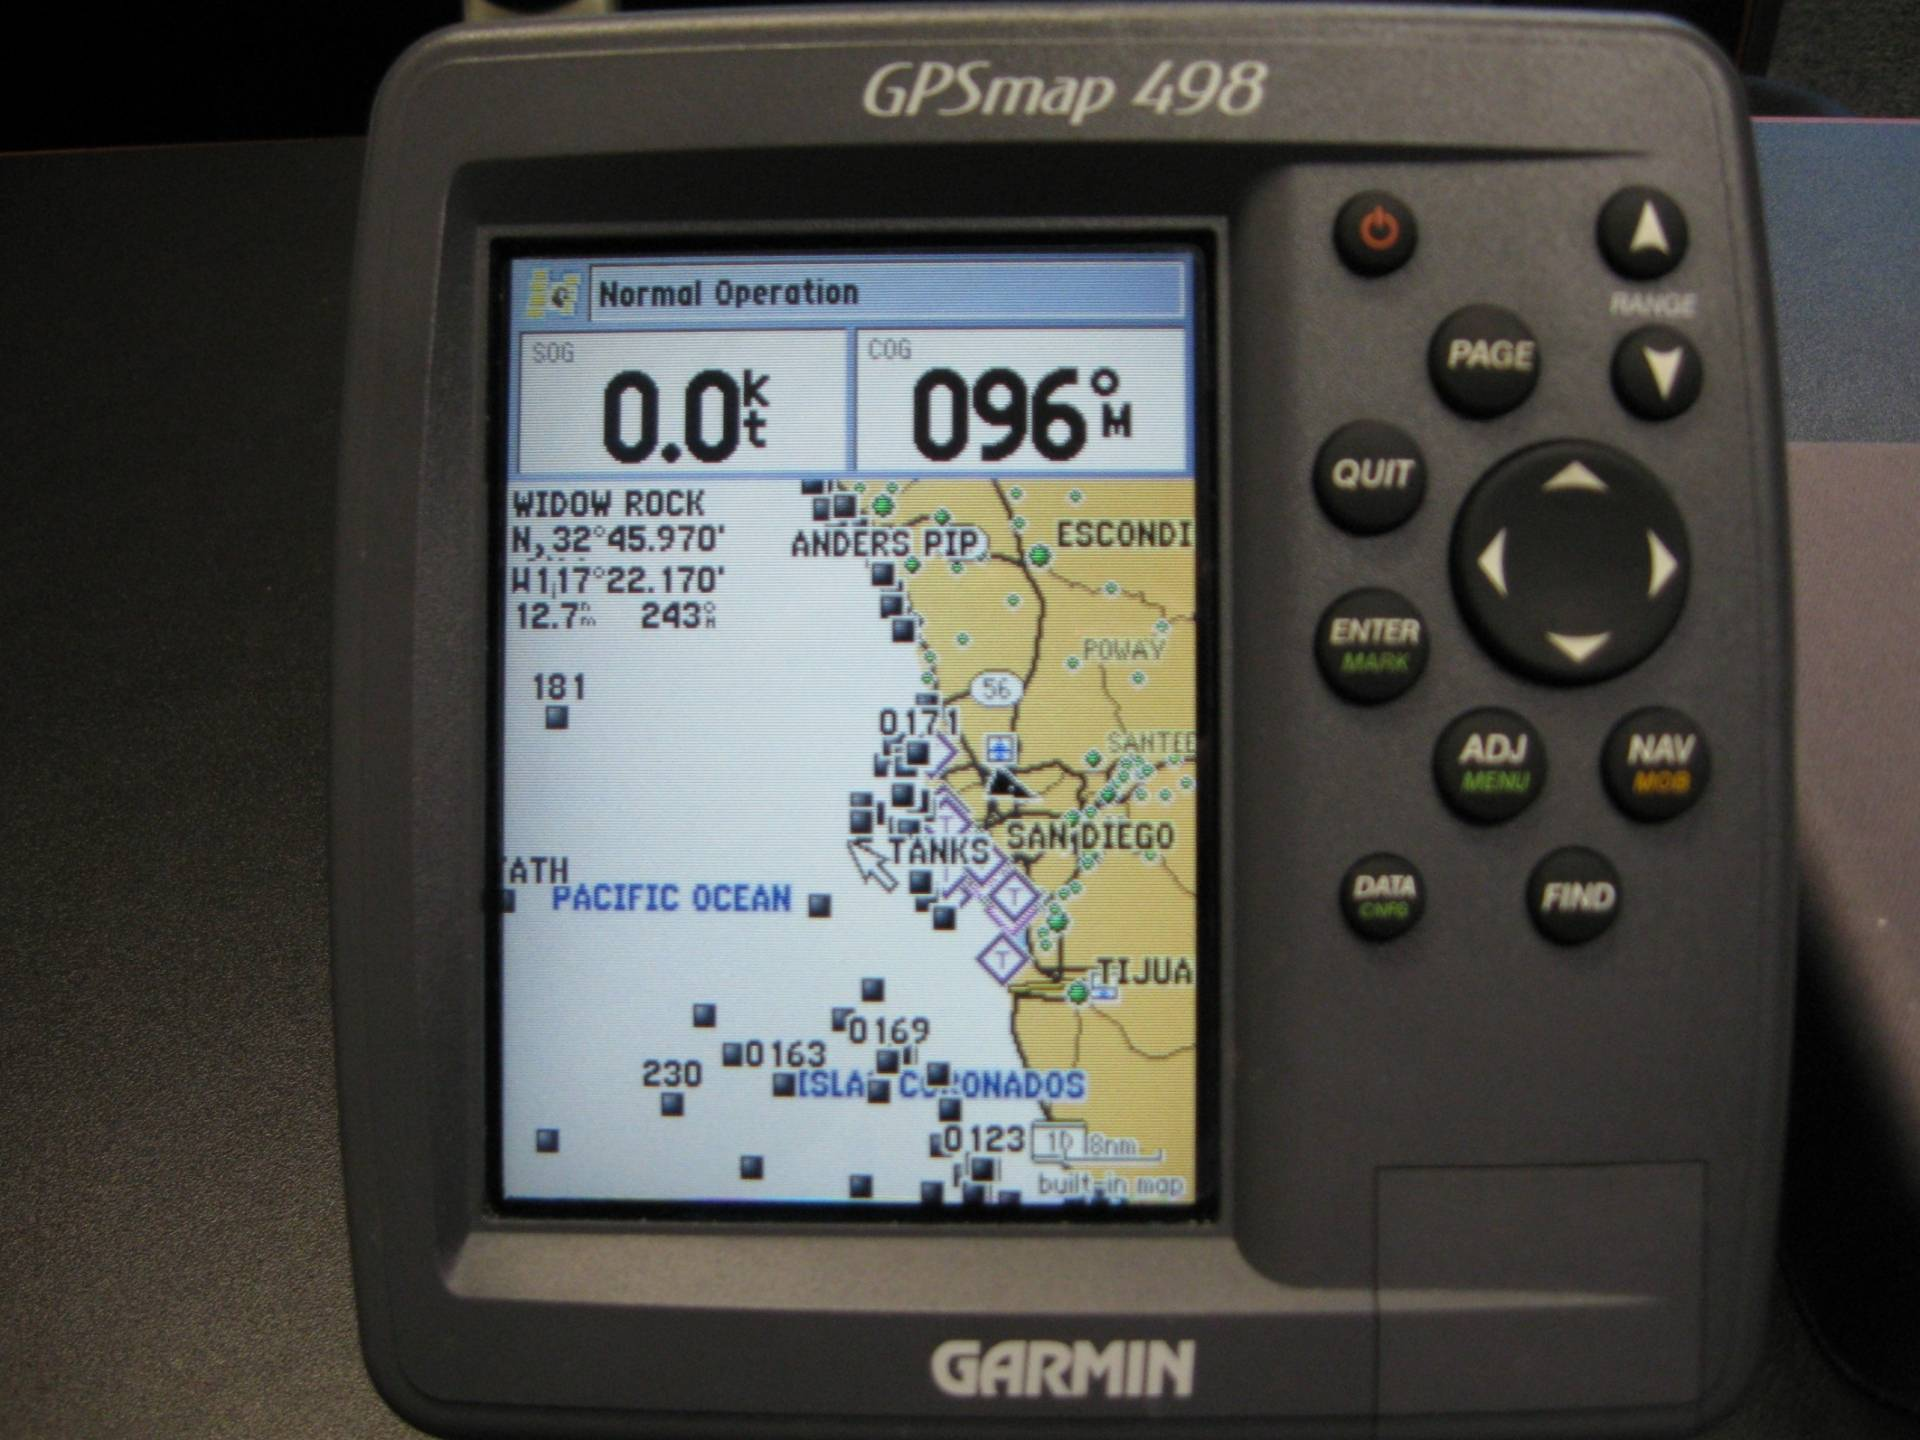 934455_802ce9e6110a02de3869edae333ca275 garmin 498 wiring diagram on garmin download wirning diagrams garmin 498 wiring diagram at gsmx.co